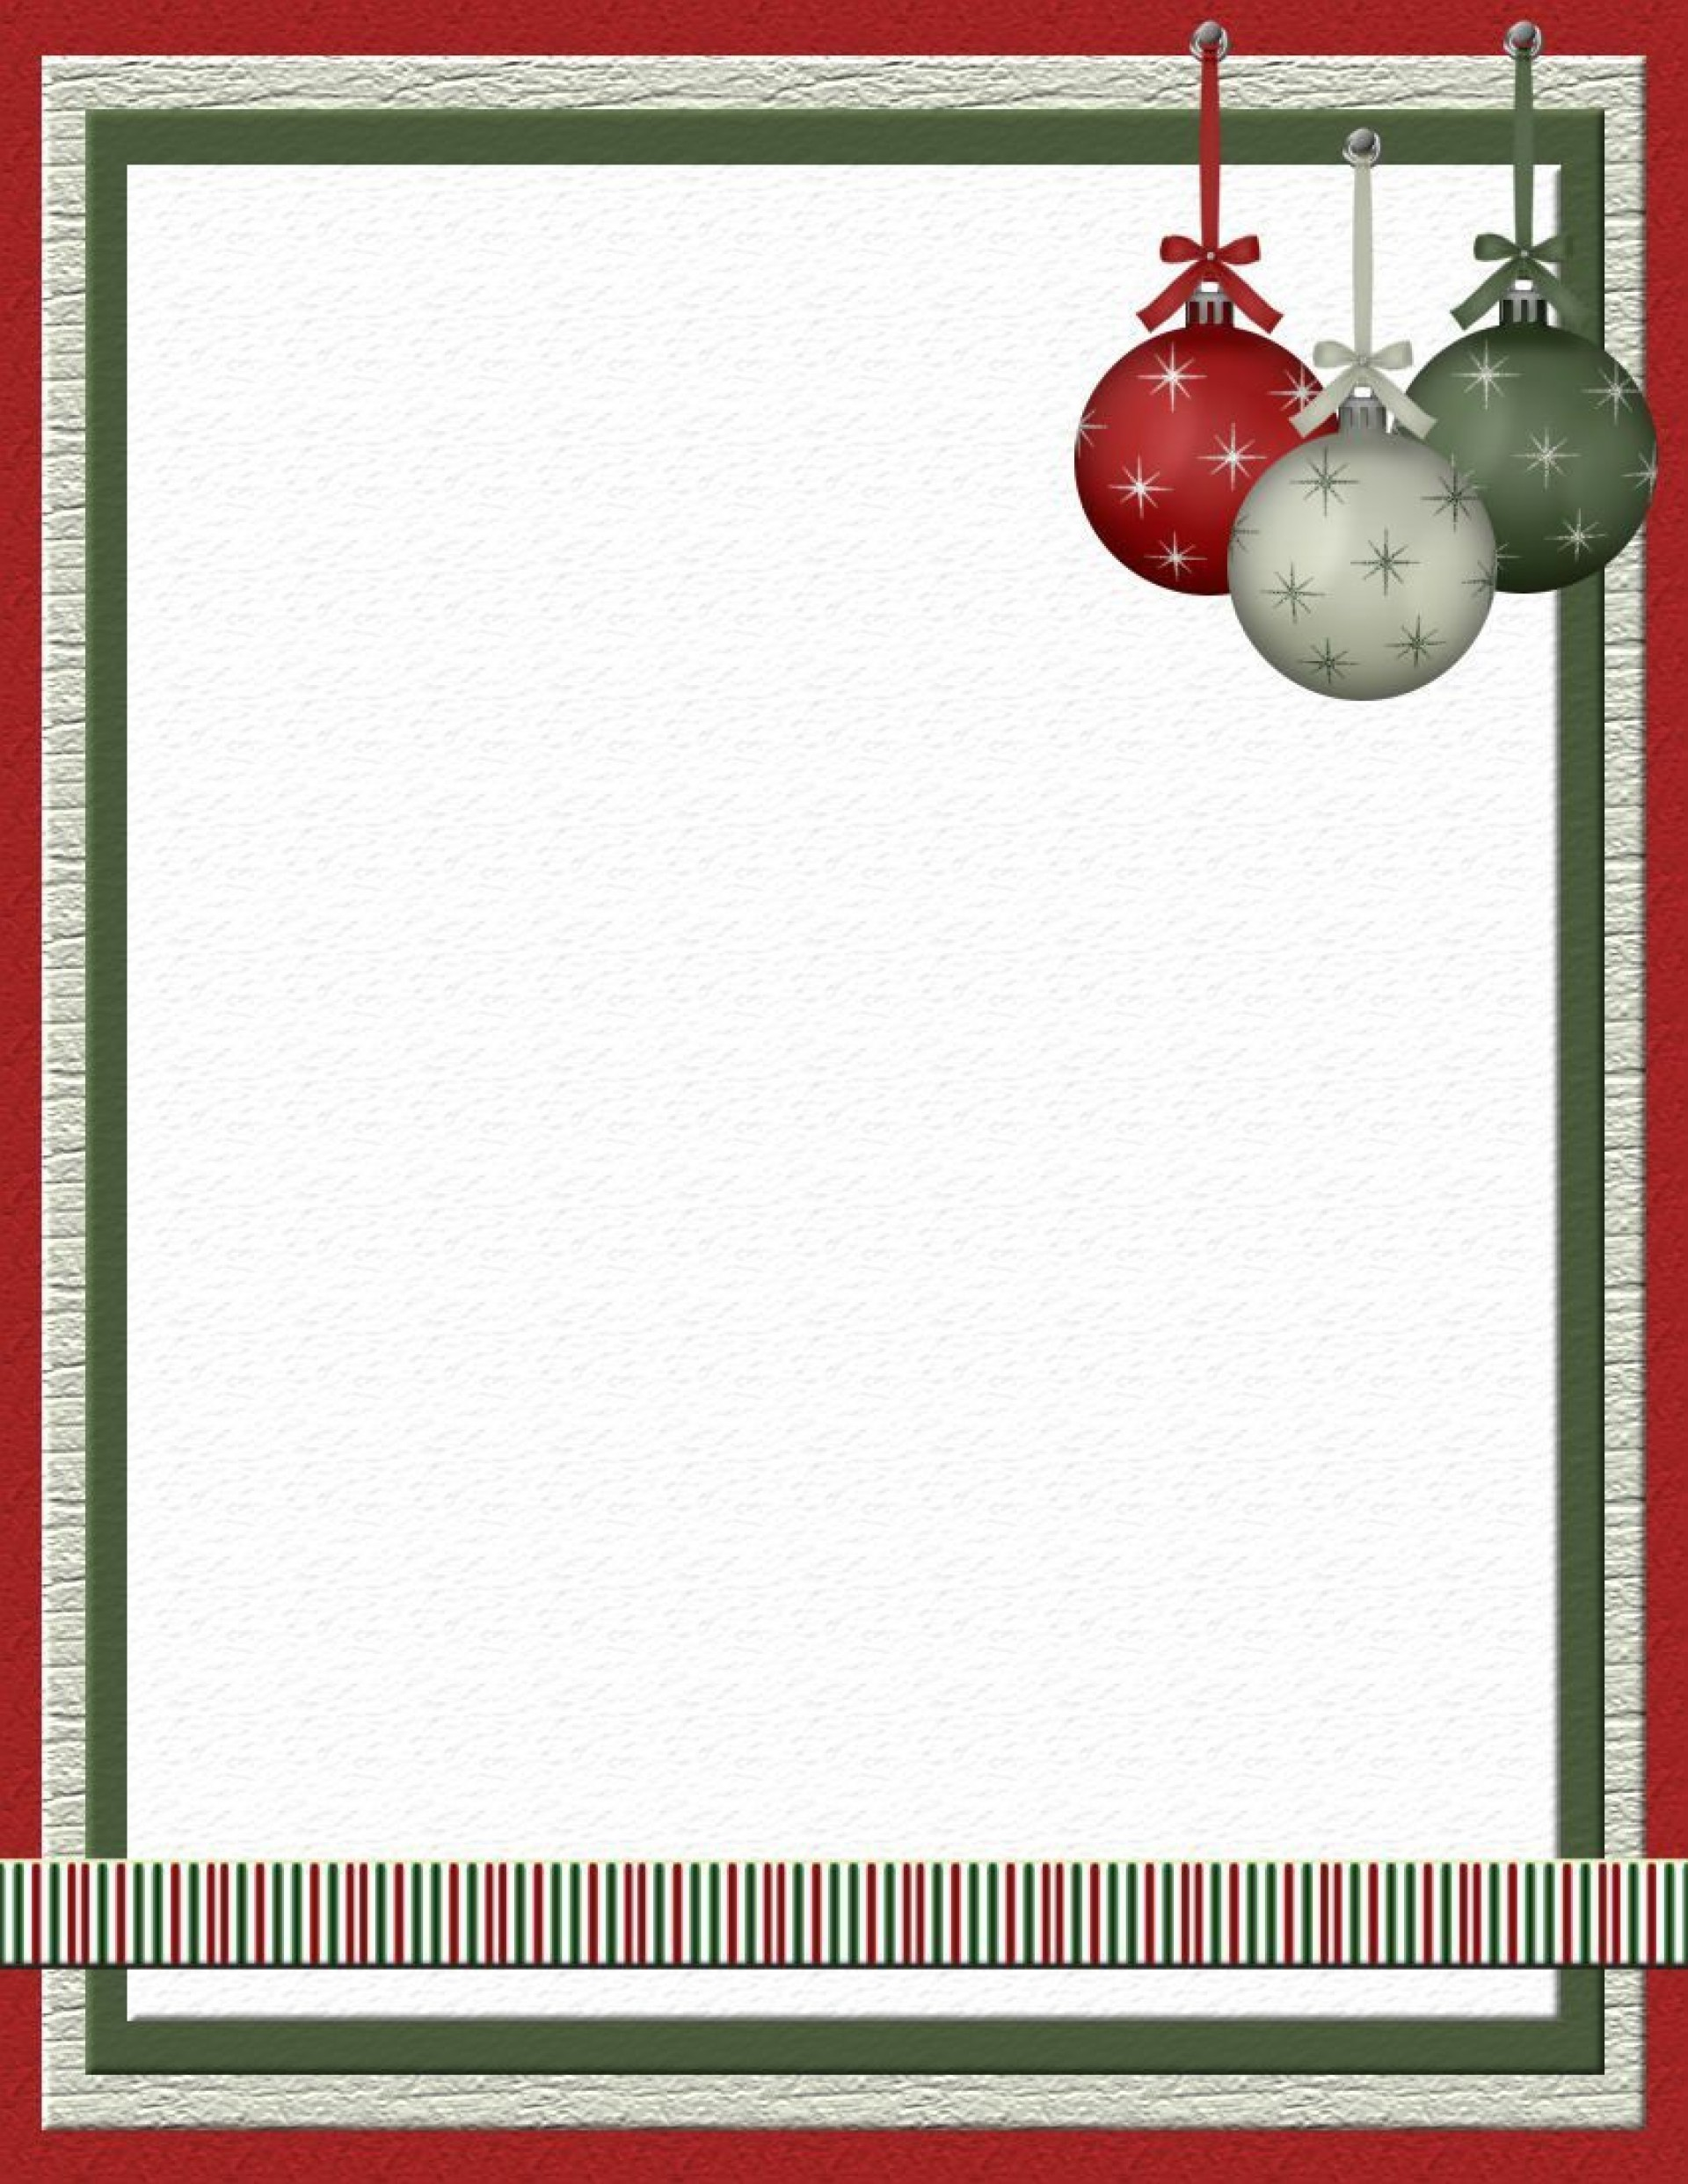 003 Staggering Free Holiday Stationery Template For Word Sample 1920